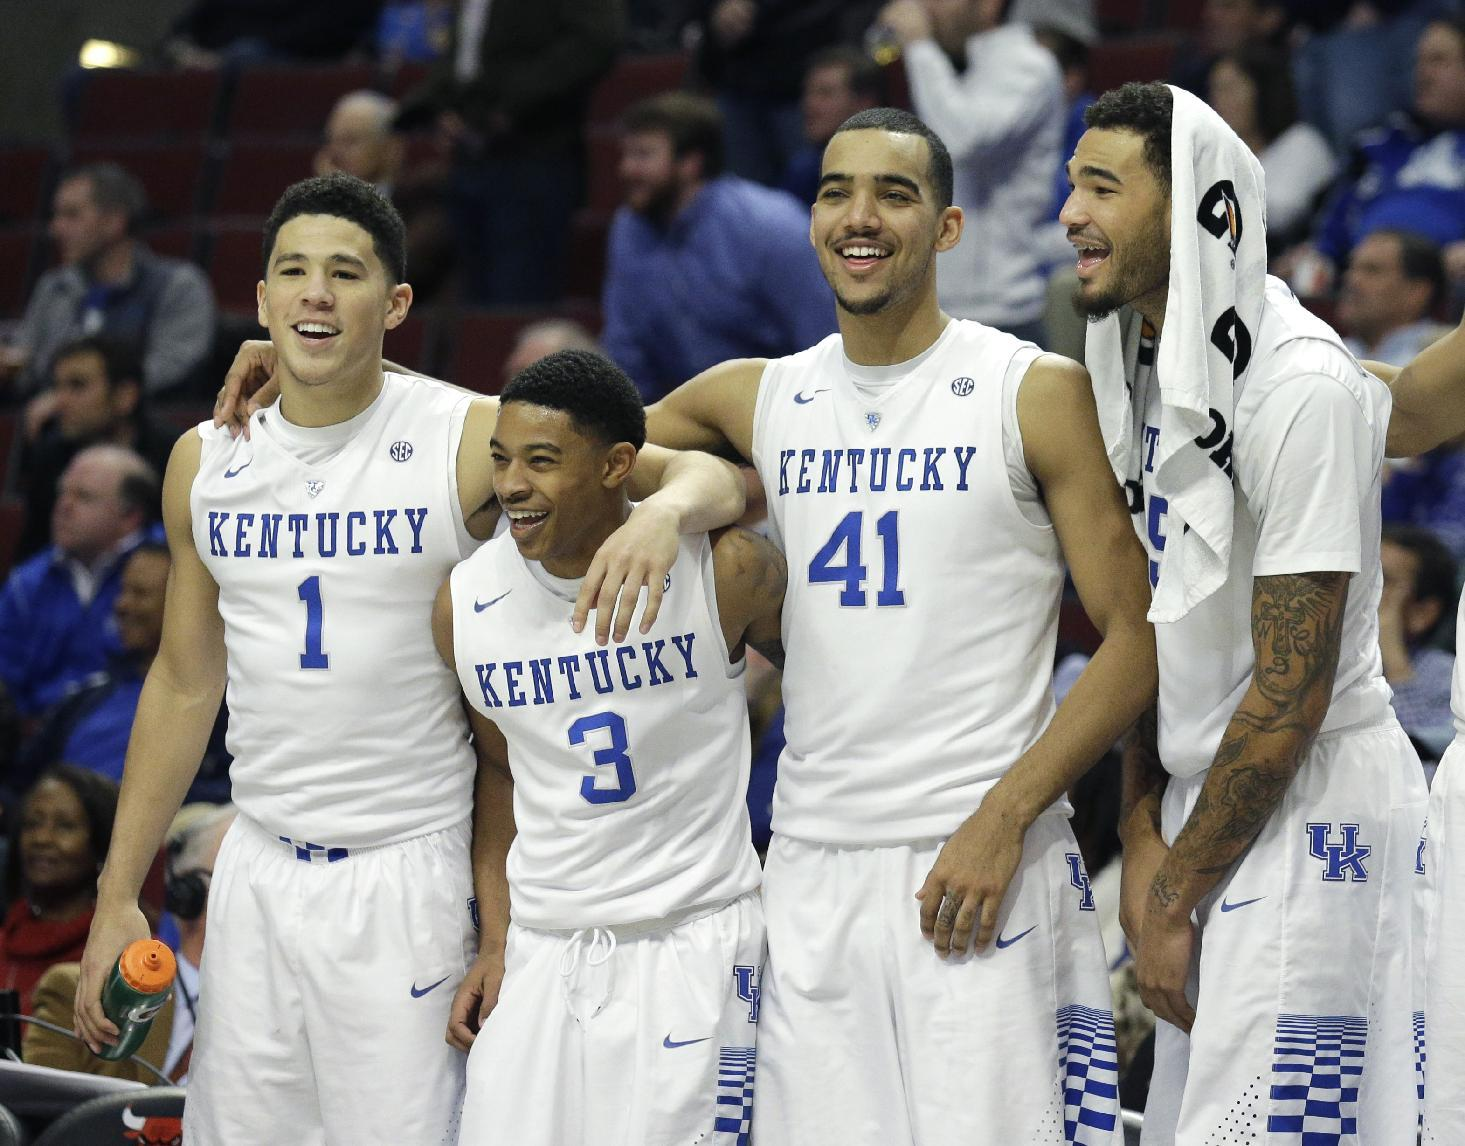 Kentucky unanimous No. 1, Big 12 has 7 ranked